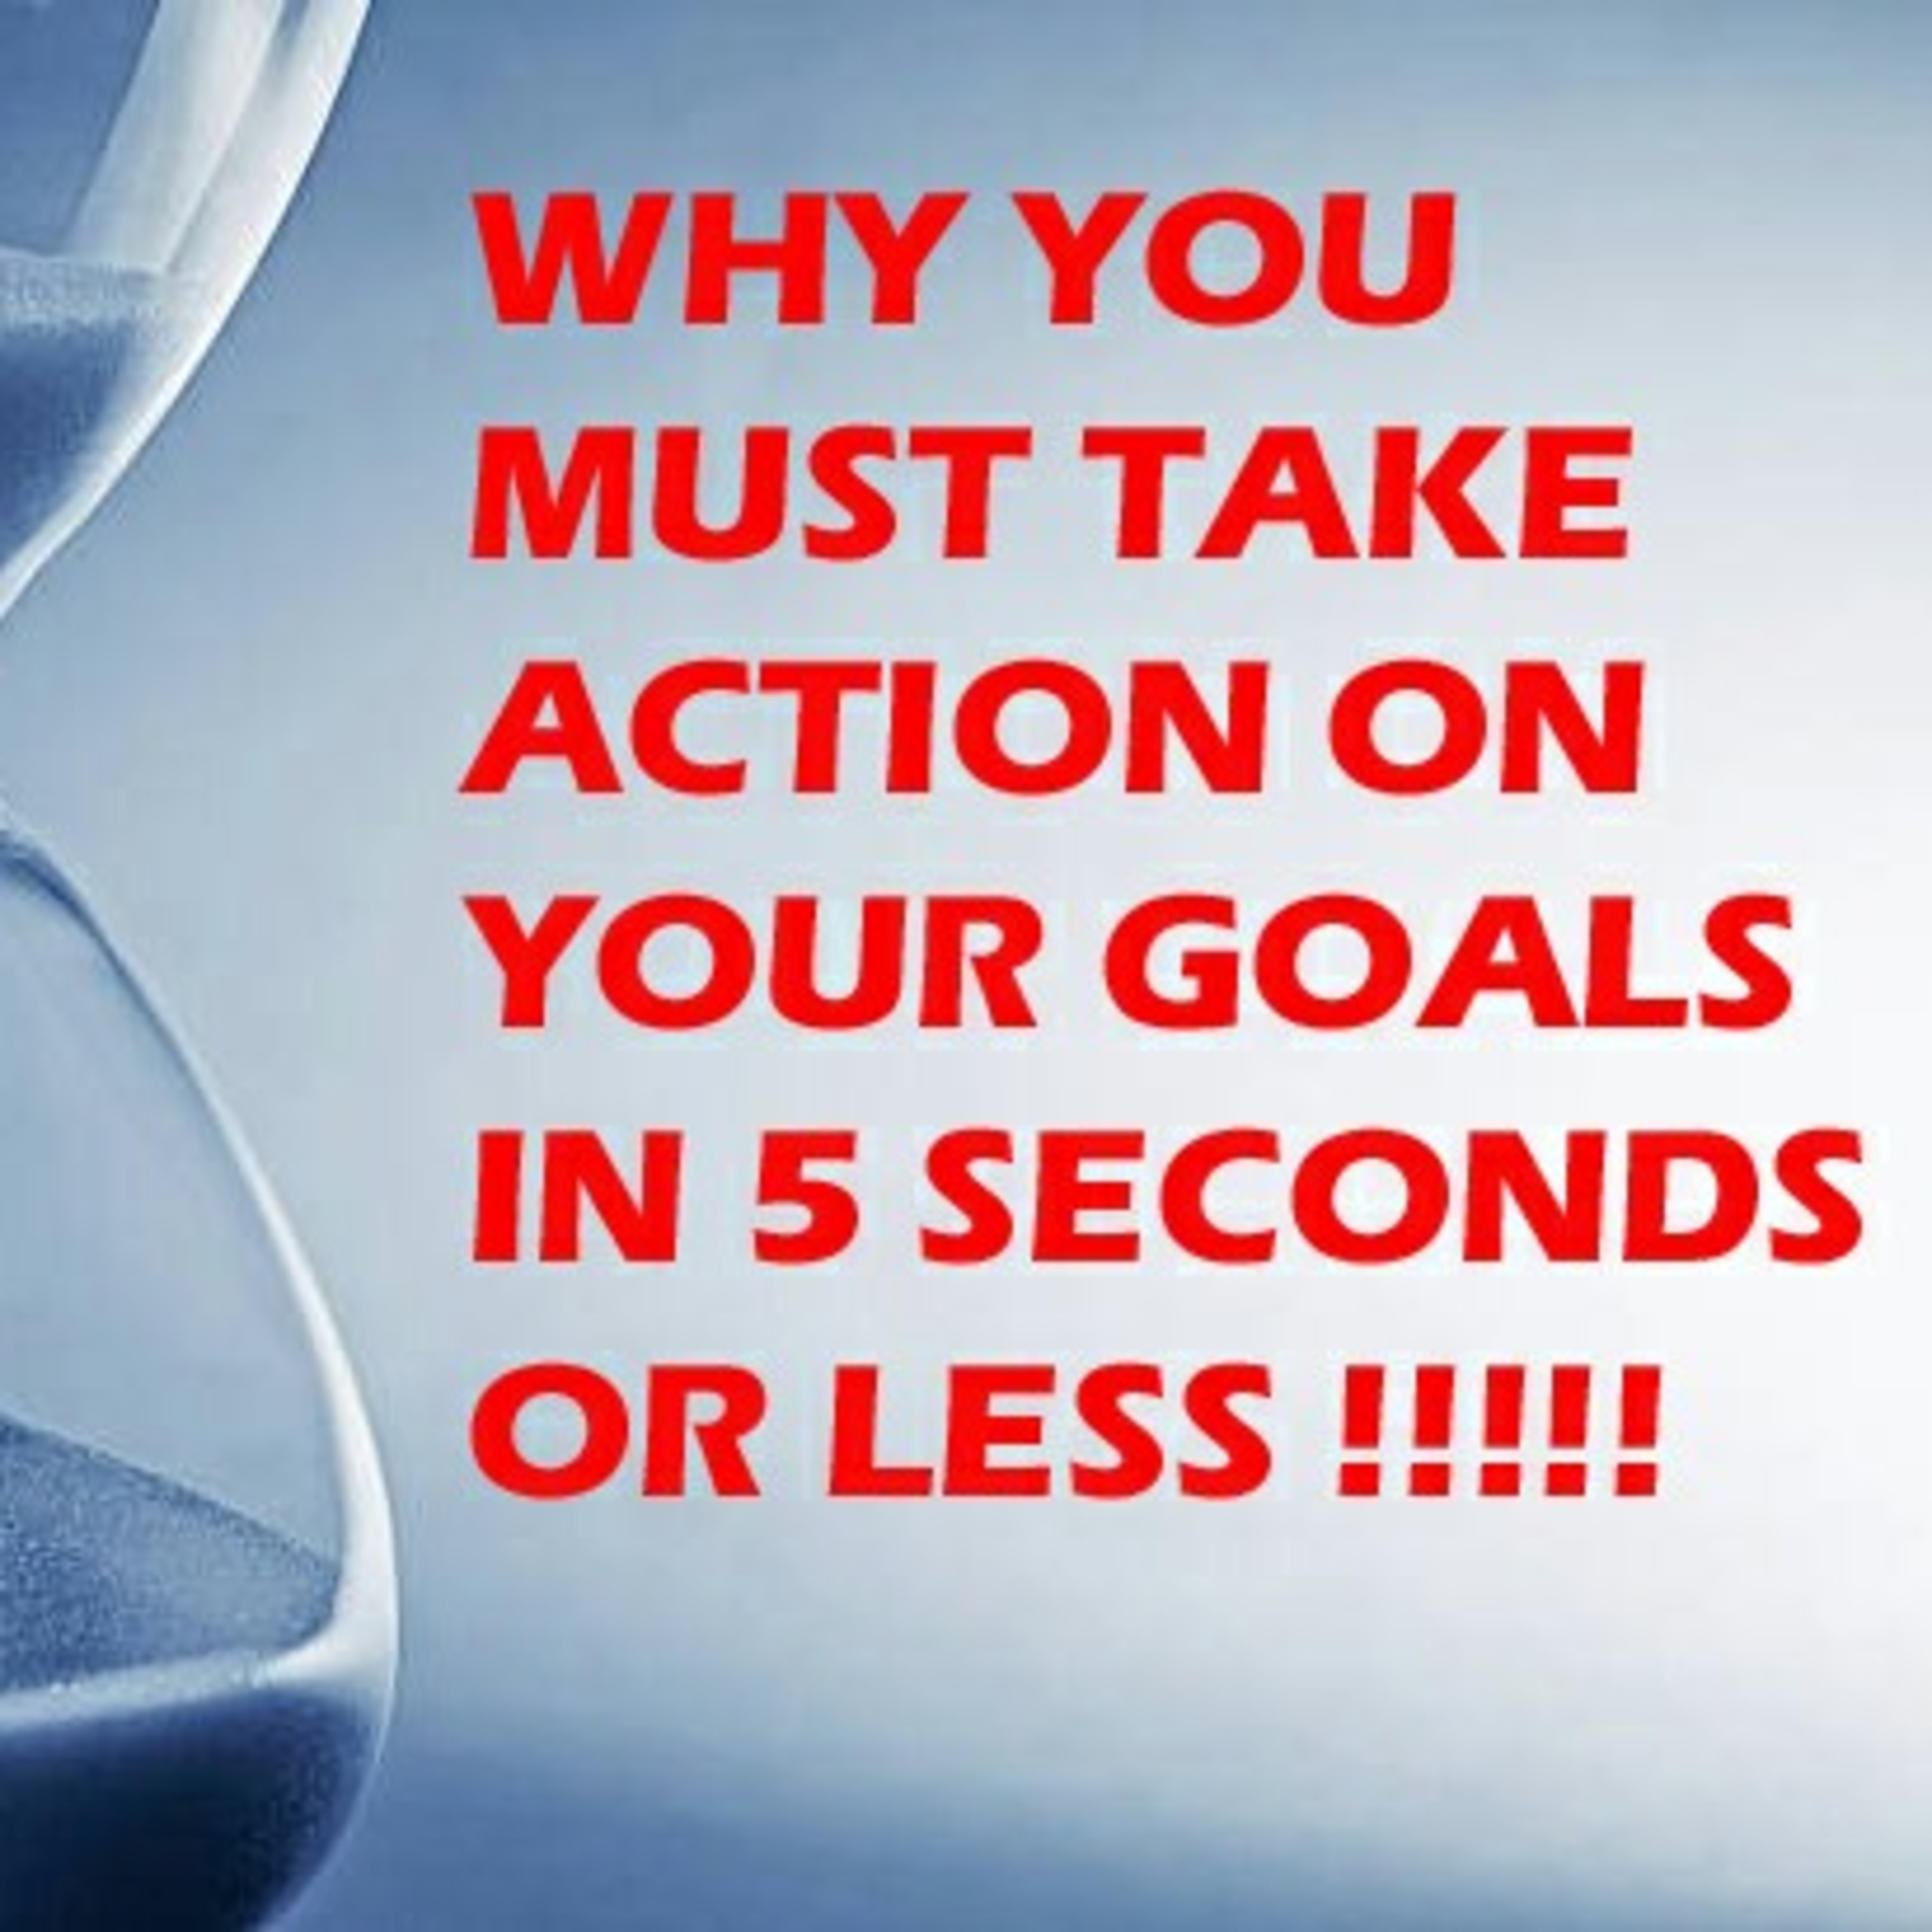 Why you must take action in 5 seconds or less when you are in the process of attaining your goals